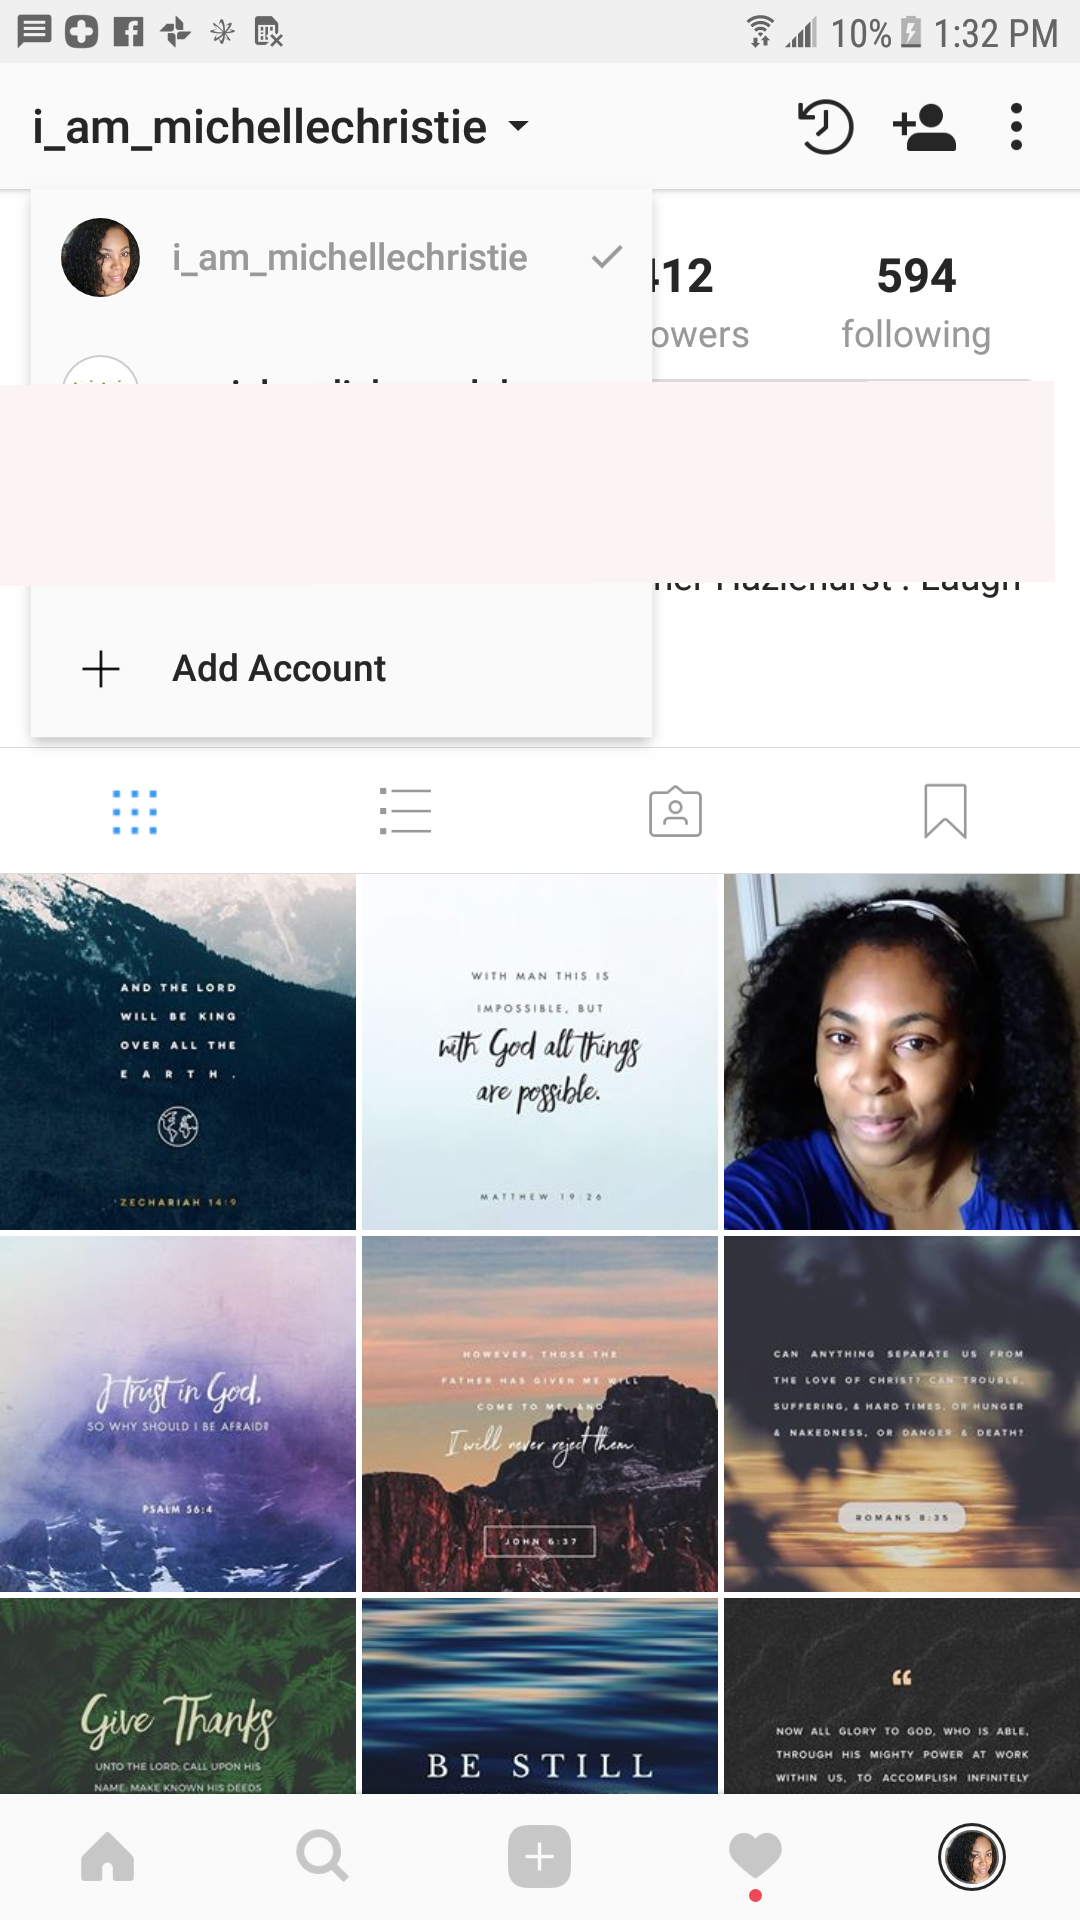 Log into instagram using a different account @macswomen or #Iammichellechristie